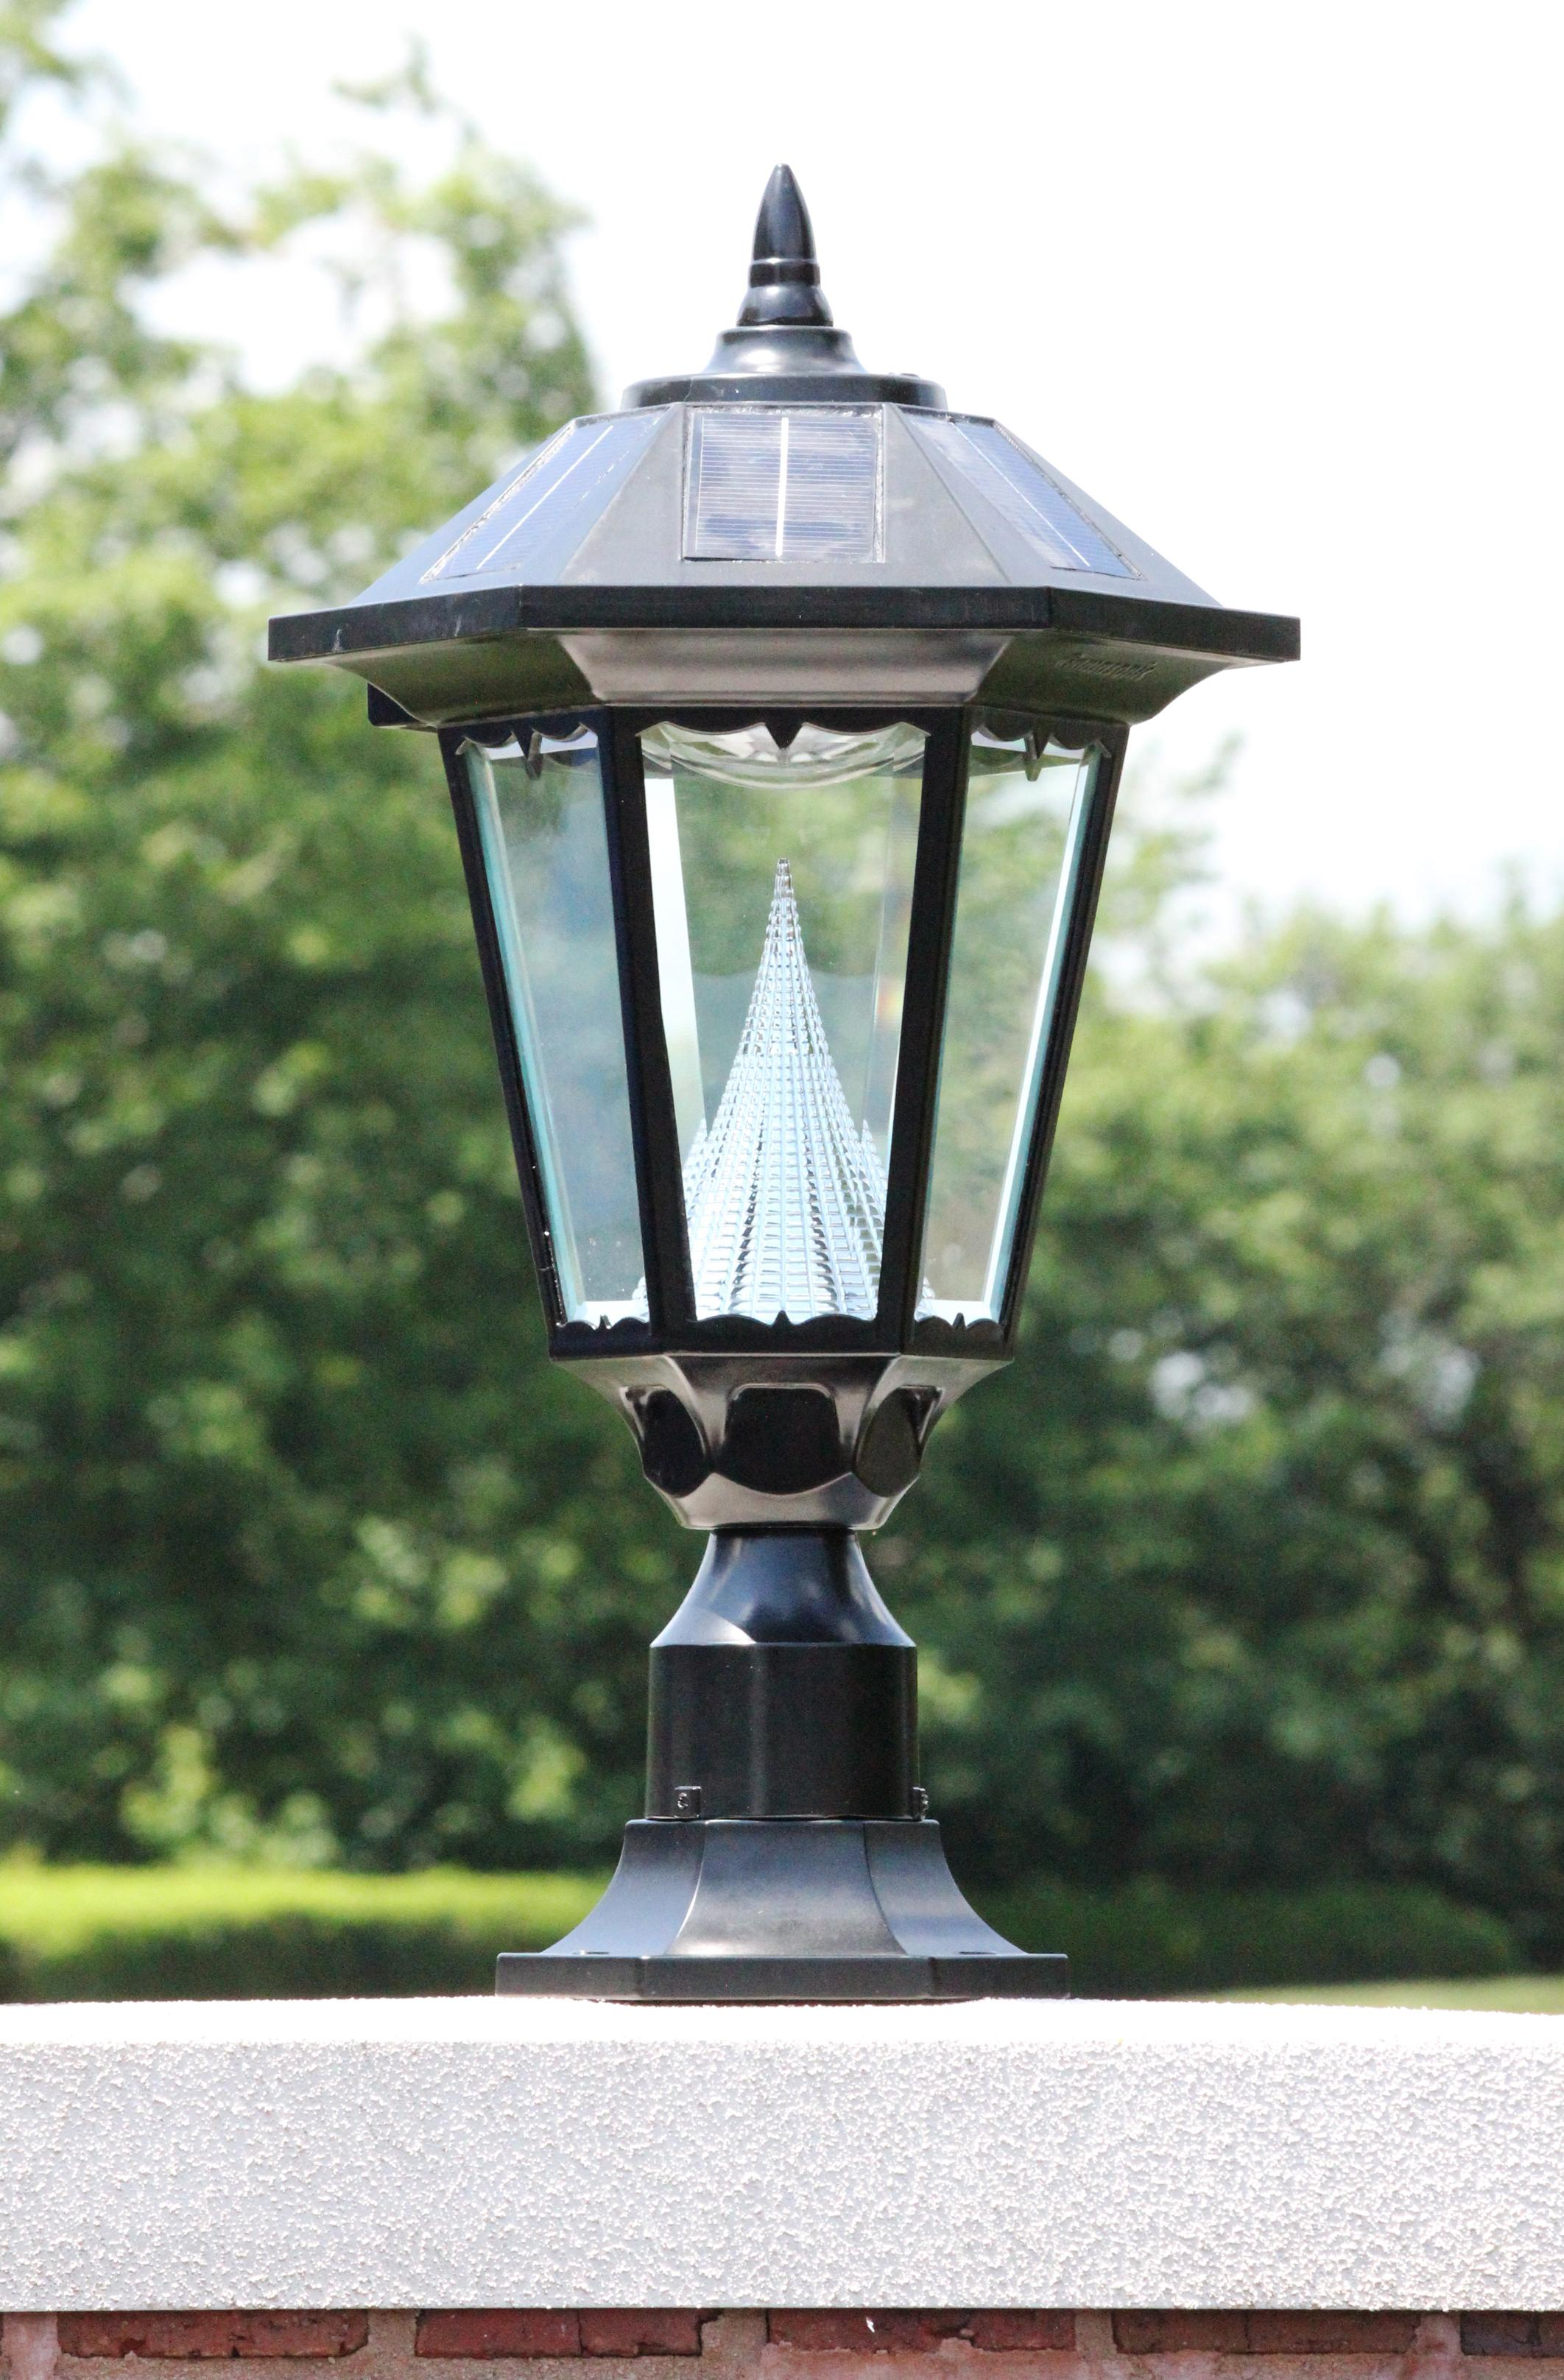 the gama sonic windsor gs 99f post mount solar light fixture comes in. Black Bedroom Furniture Sets. Home Design Ideas